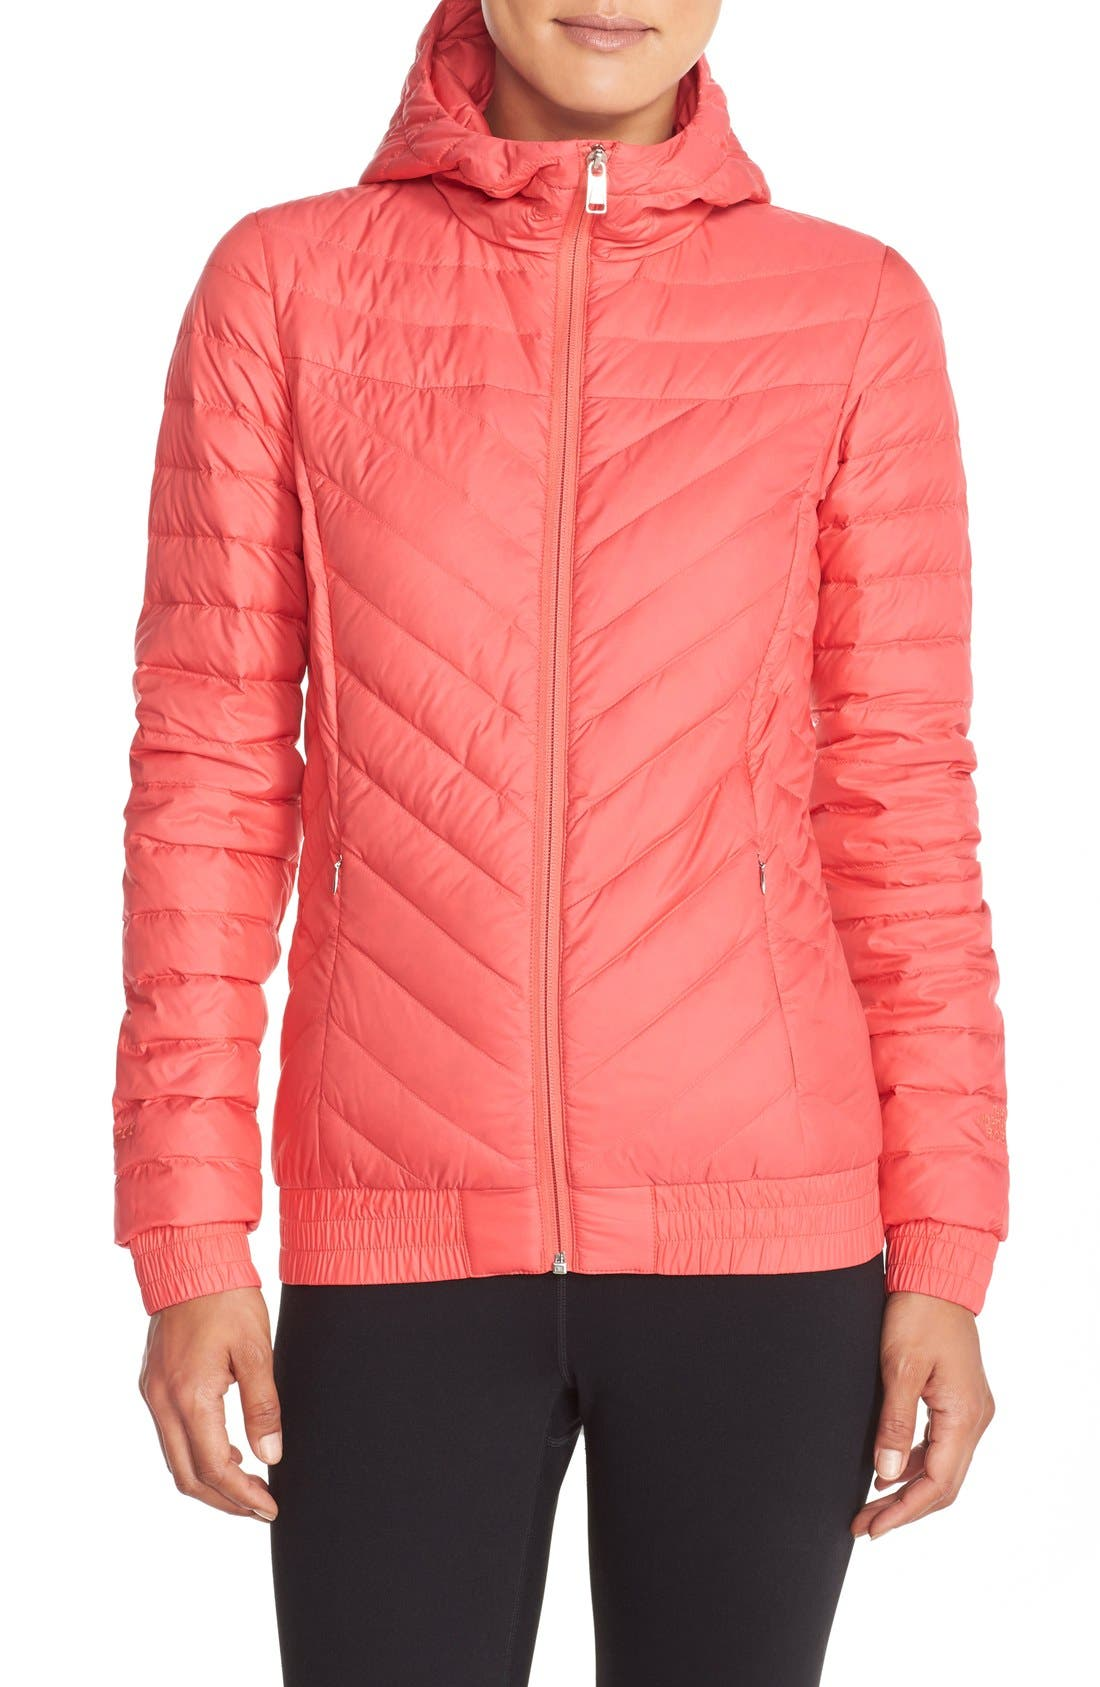 Main Image - The North Face 'Karokora' Quilted Down Bomber Jacket